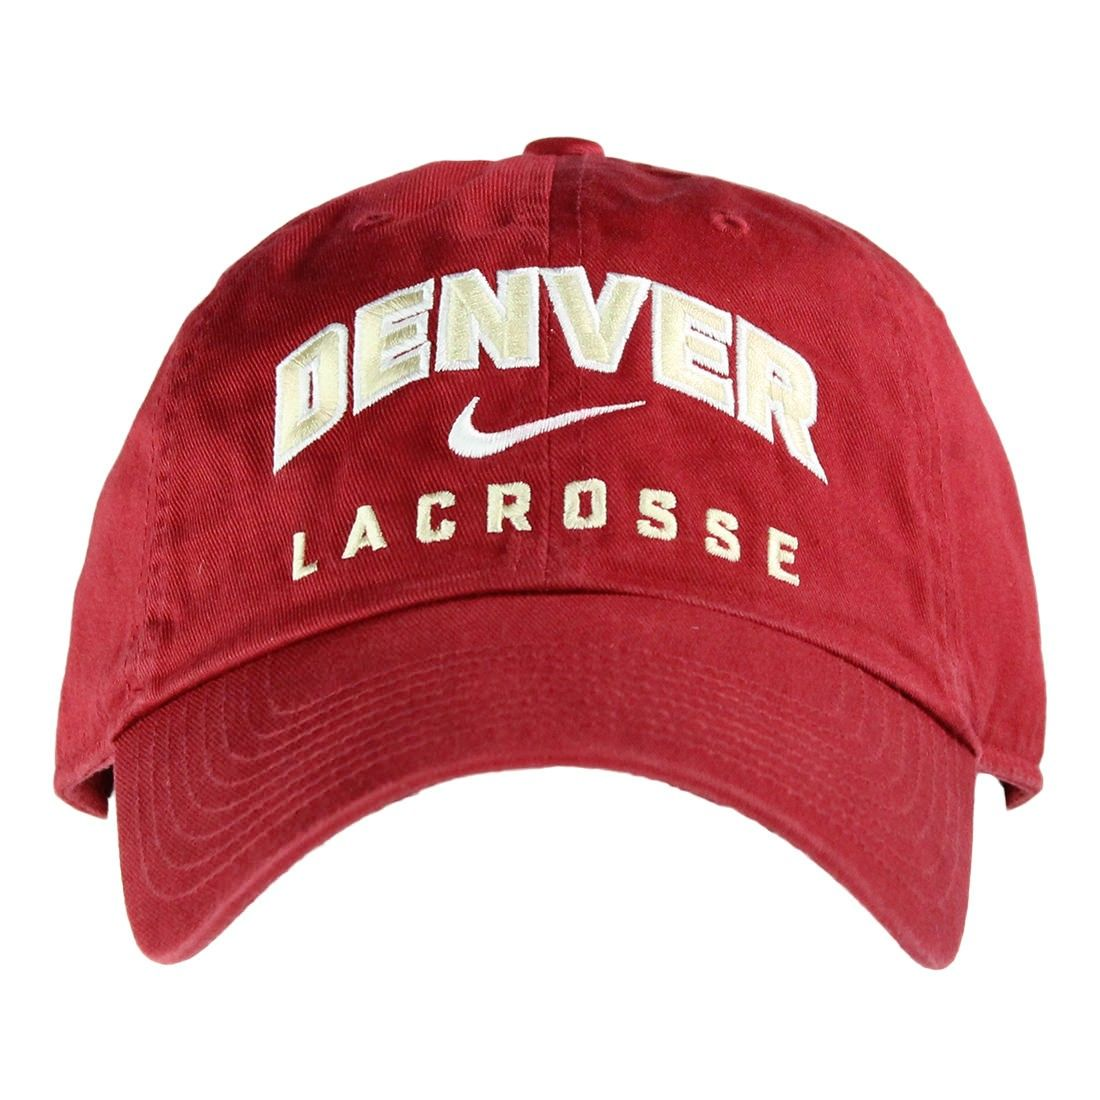 ... where can i buy denver nike campus hat denver lacrosse design on front  of hat gold ... 6cc72df8f7